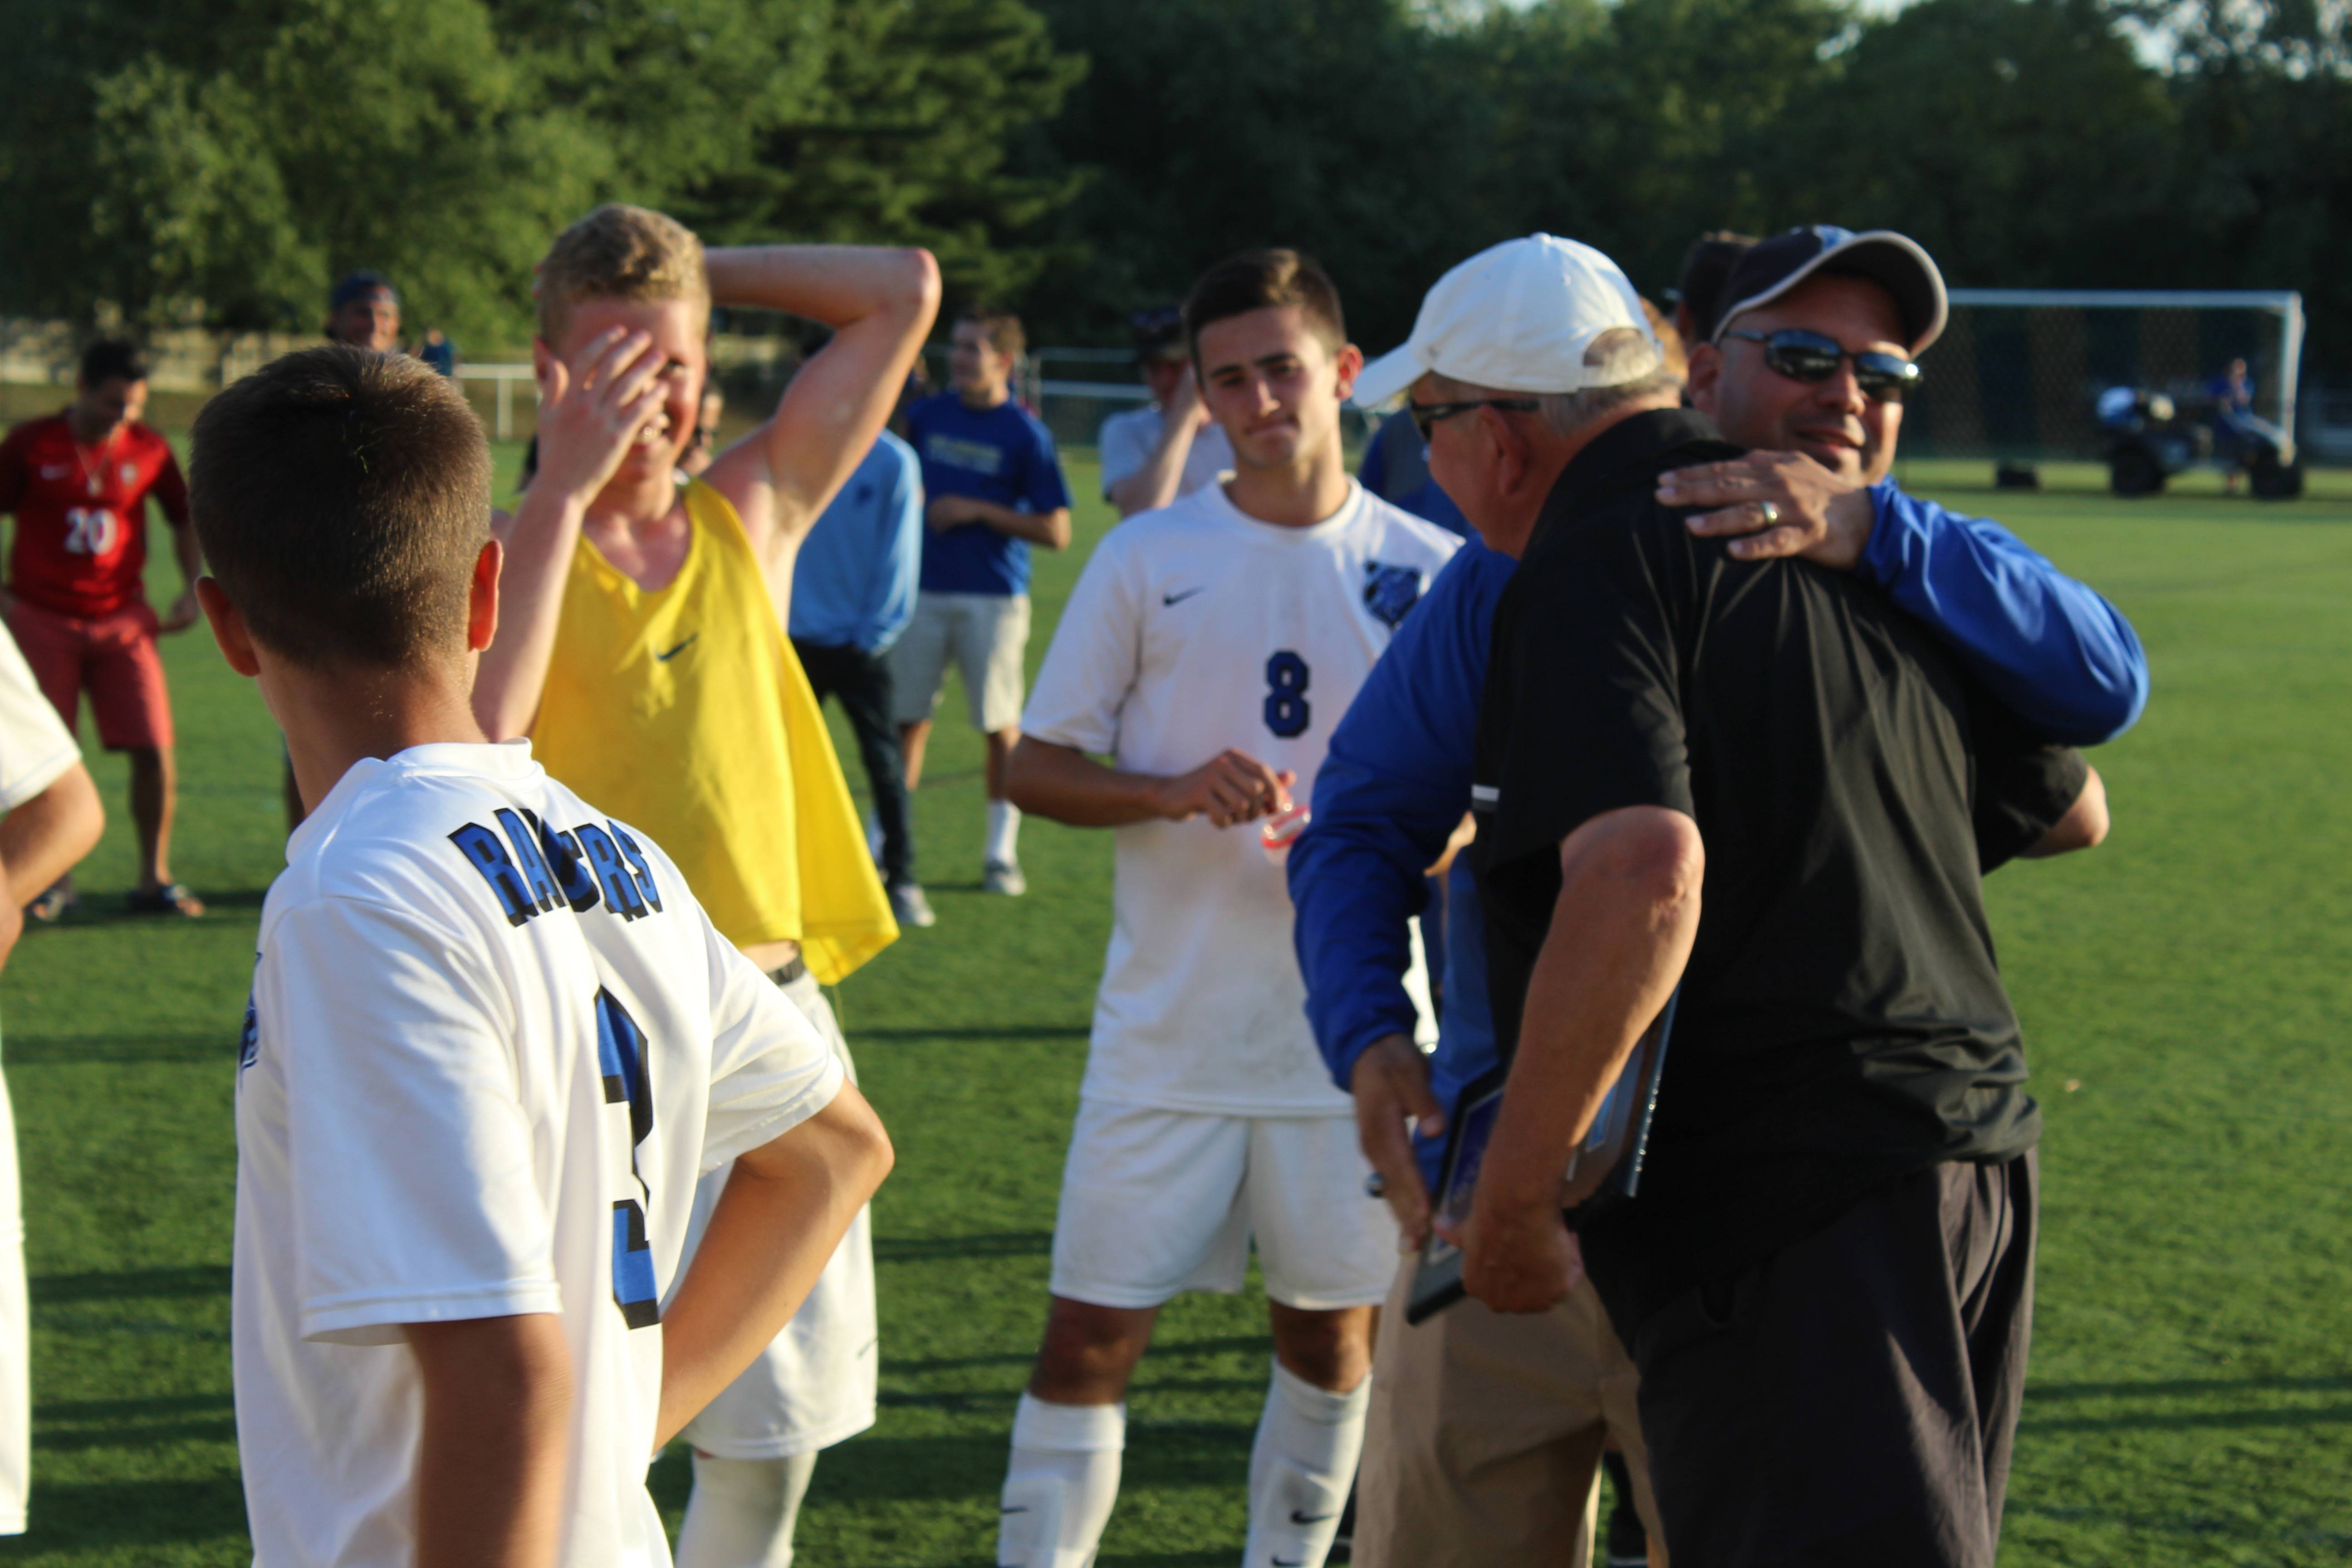 Breznitsky's Legacy at Scotch Plains-Fanwood HS Grows with Career Win #700